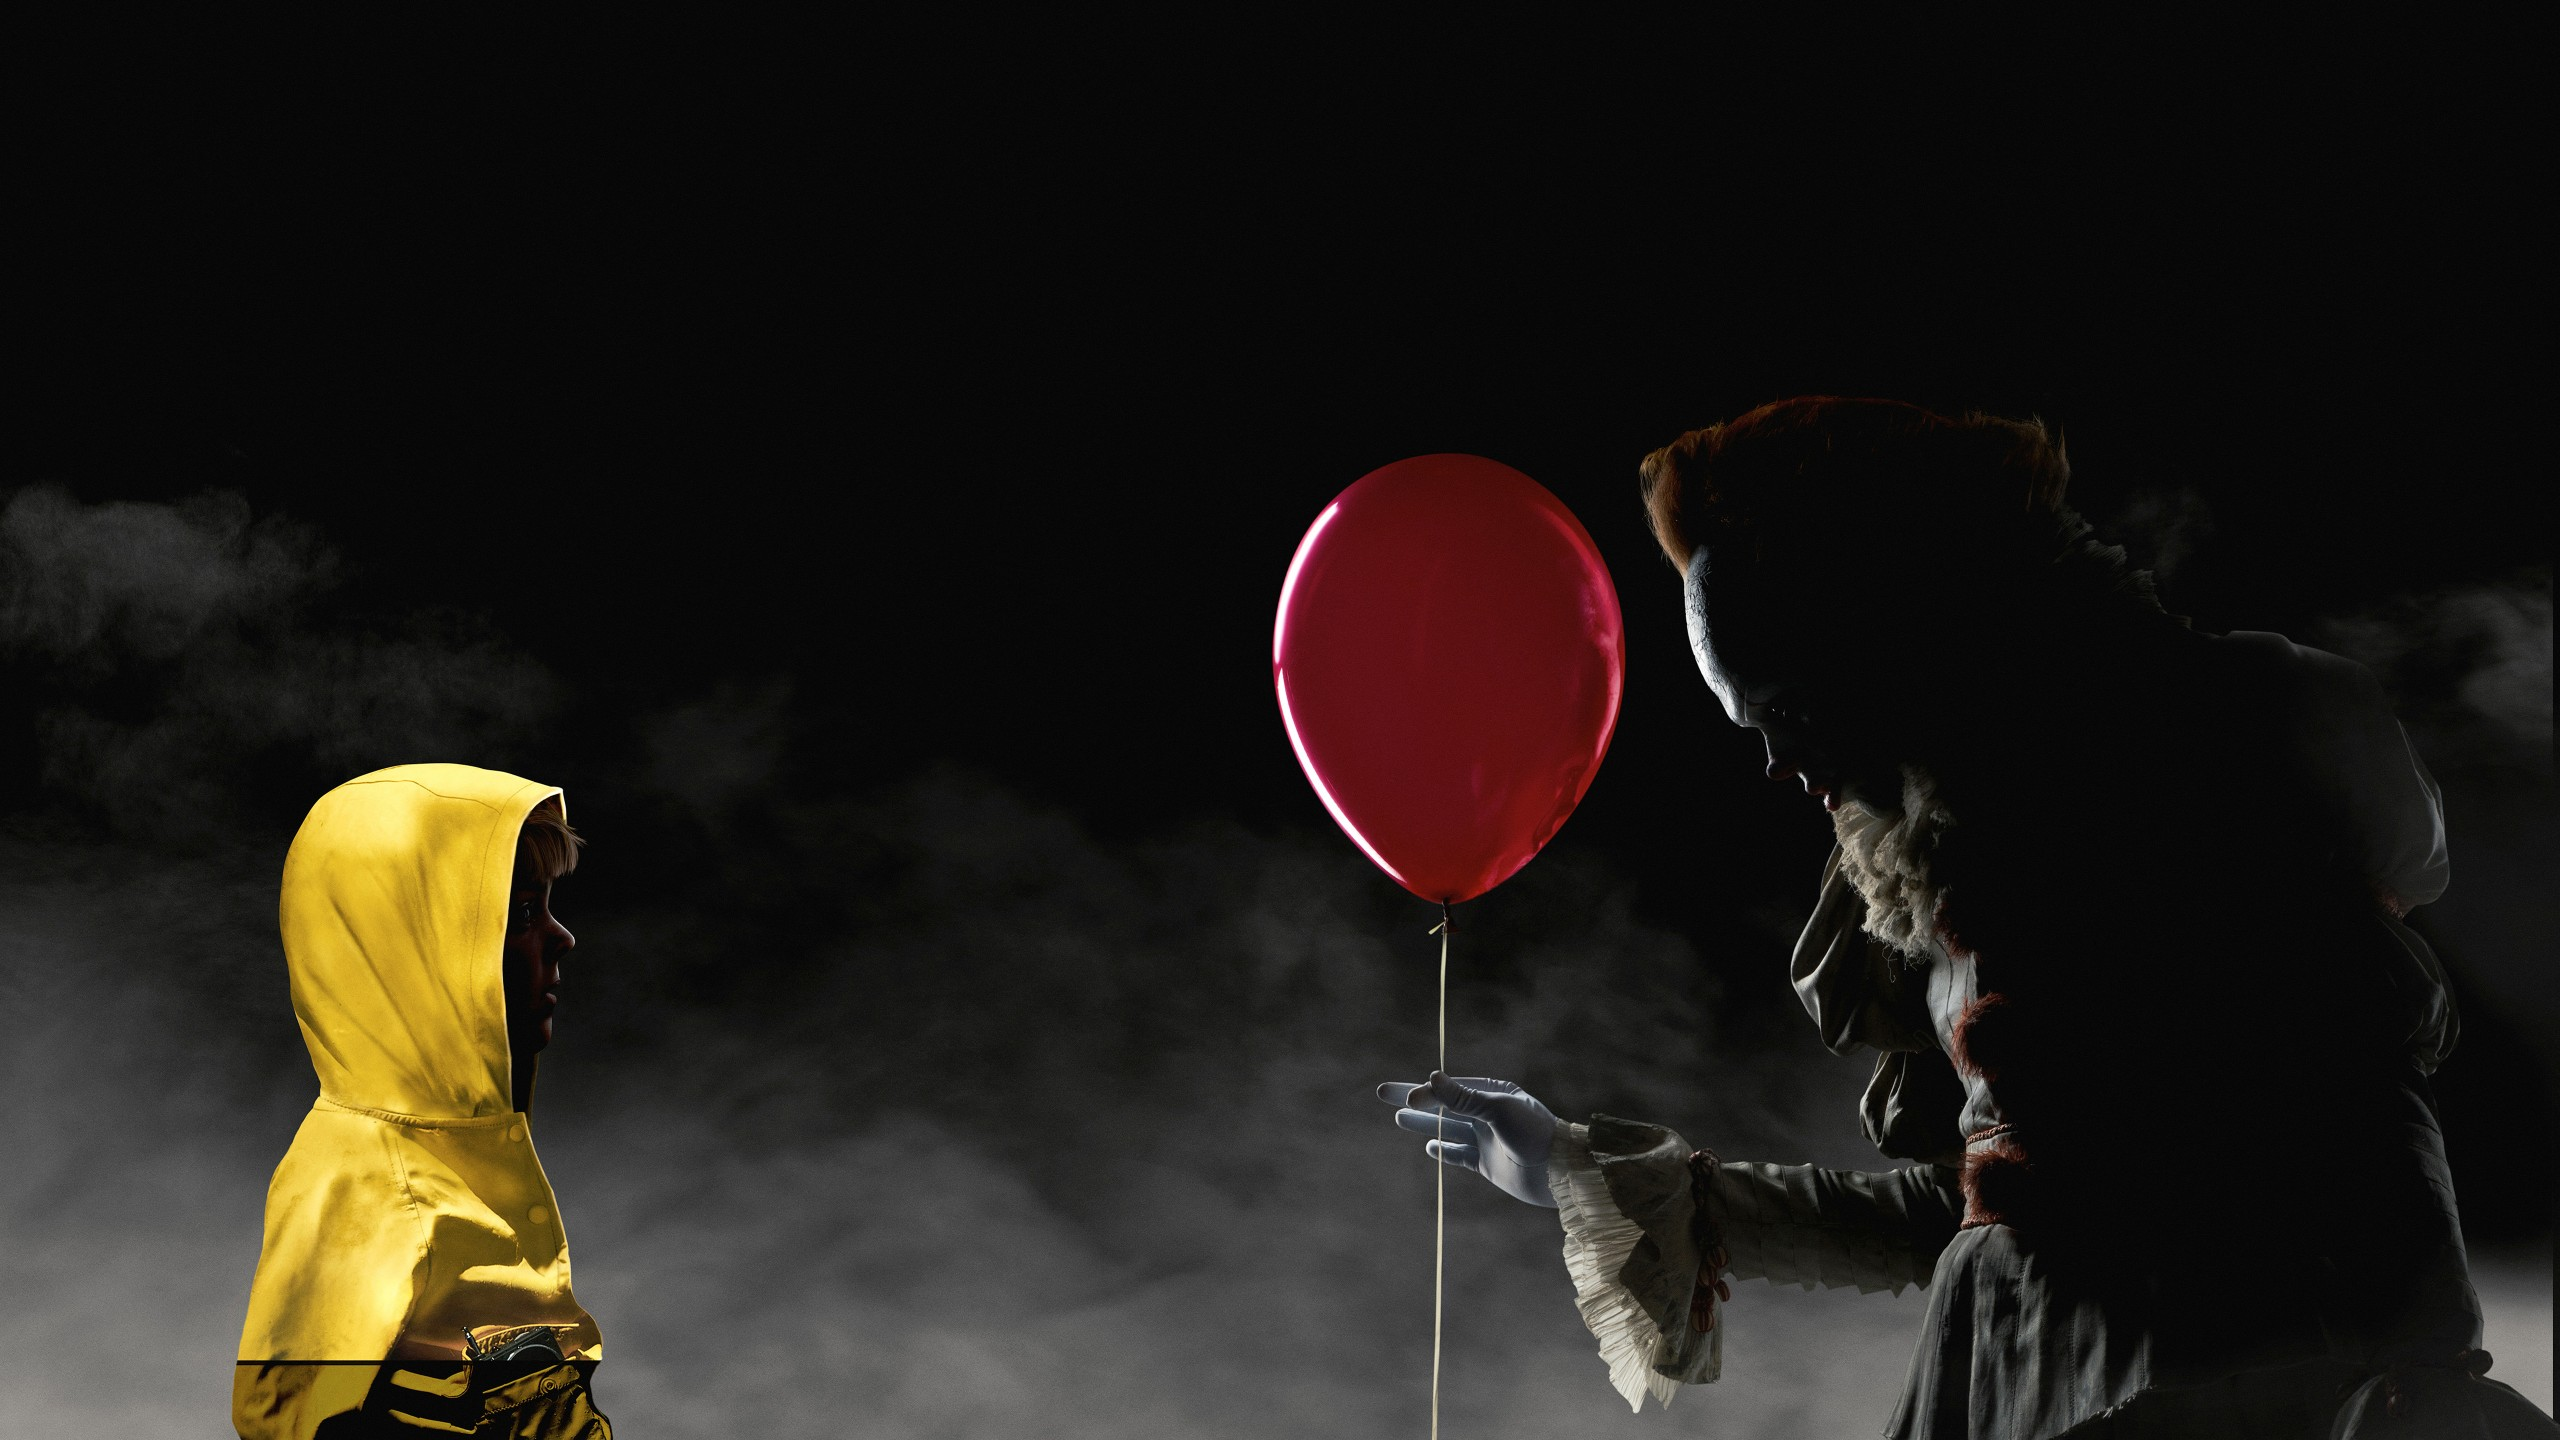 IT recensione film 2017 Pennywise